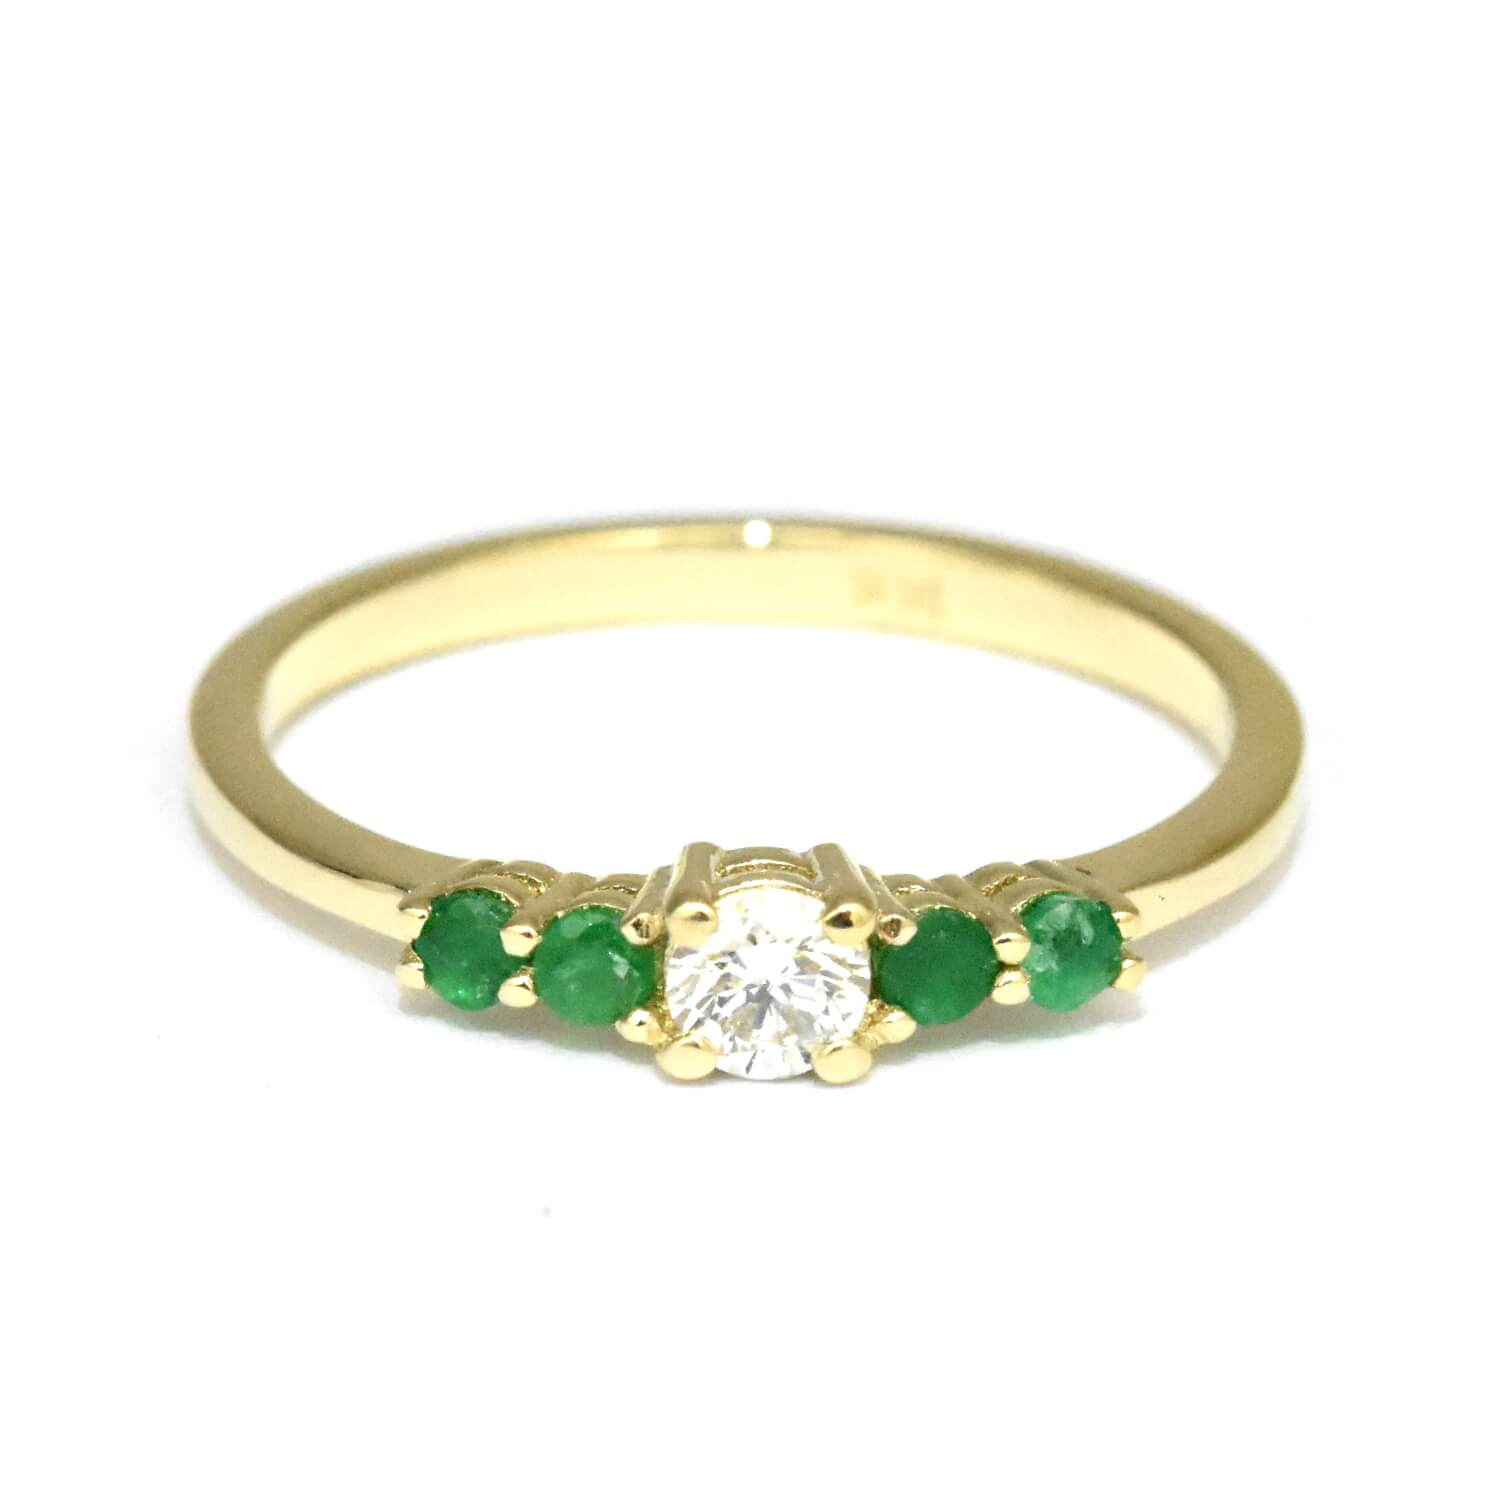 emeralds for hottest the ira b ring huffpost facebook emerald trend engag hotest engagement weissman o